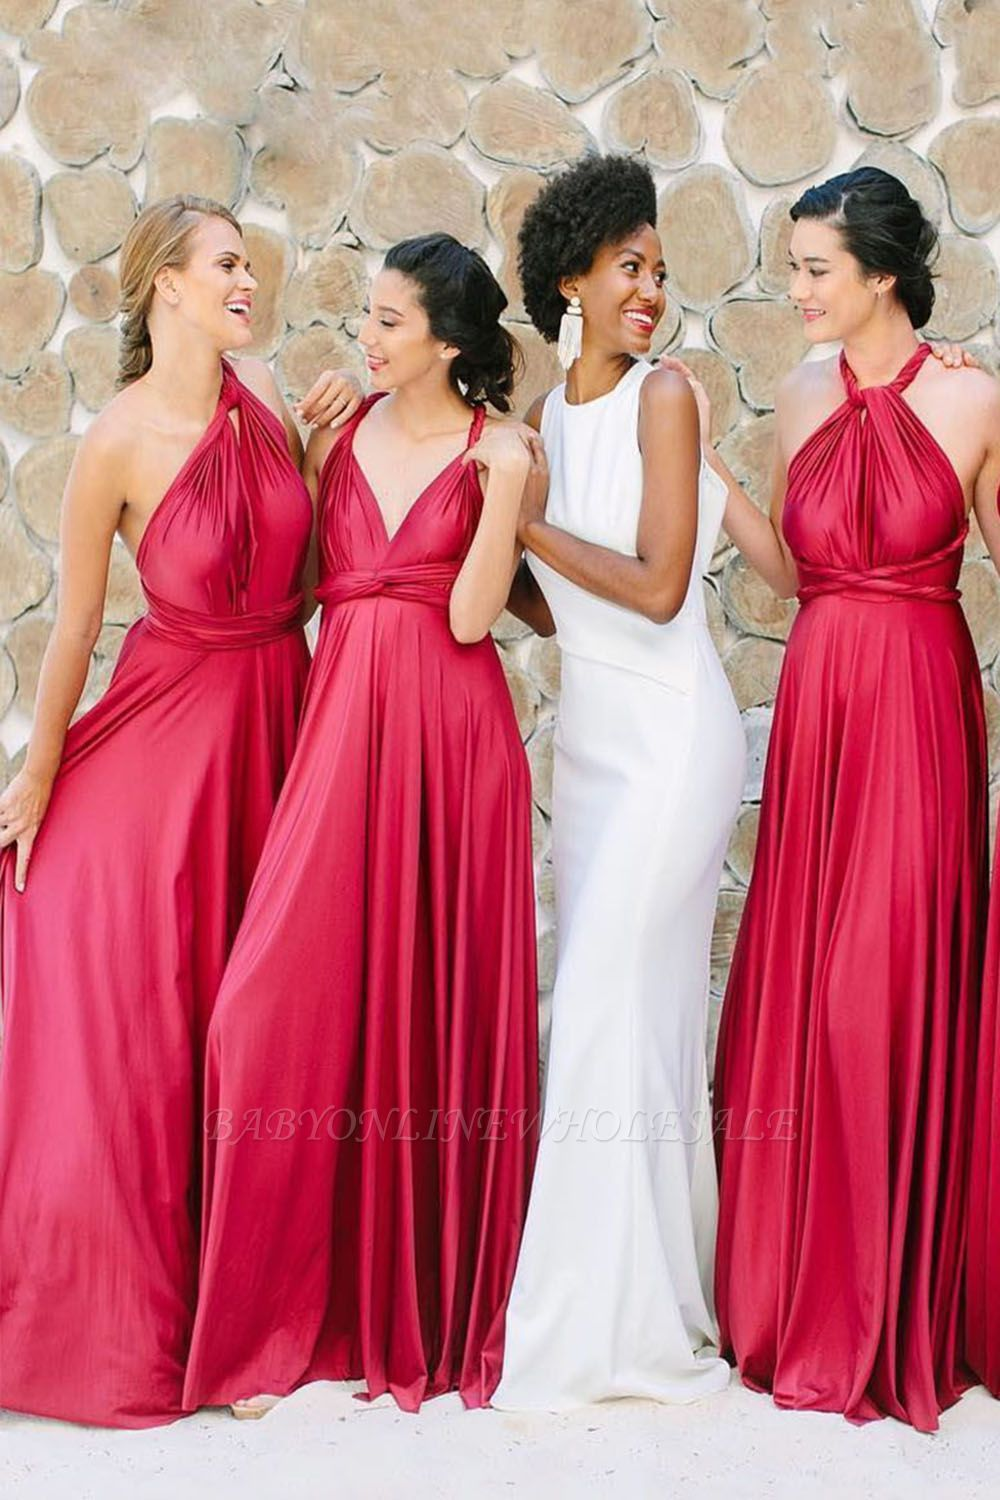 Irregular Shoulder Strap Changeable Style Bridesmaid Dresses | Long Backless Wedding Party Dresses With Sweep Train